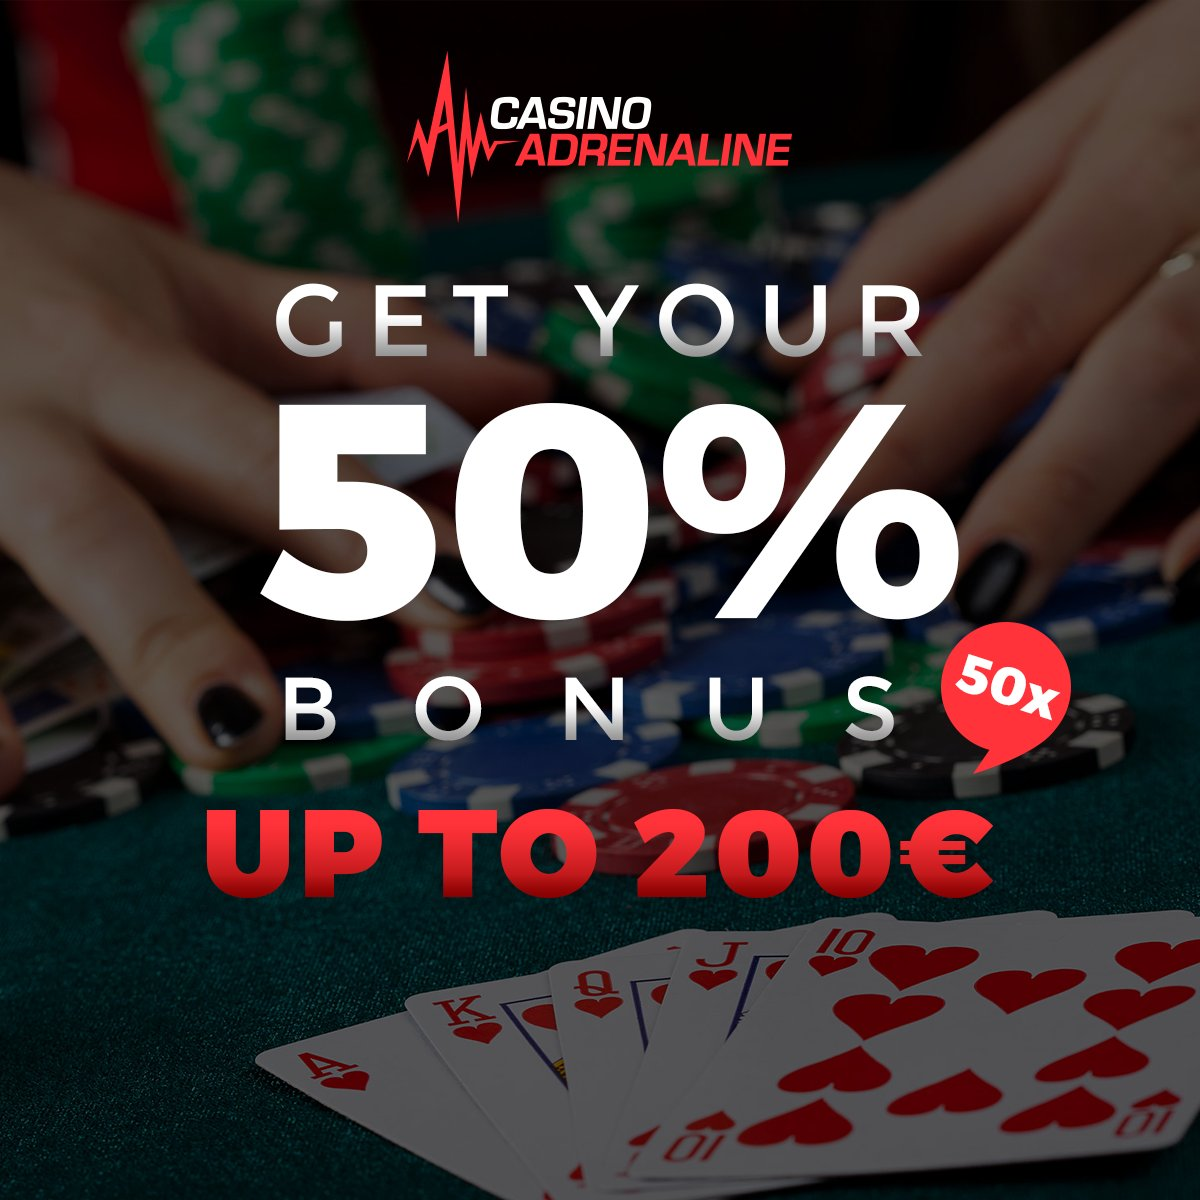 test Twitter Media - Challenge your luck today and get your 50% bonus up to 200 EUR 50x, bonus and deposit! 😲😎 #CasinoAdrenaline #CasinoAdrenalinebonus https://t.co/Z6vHpQT5Ox